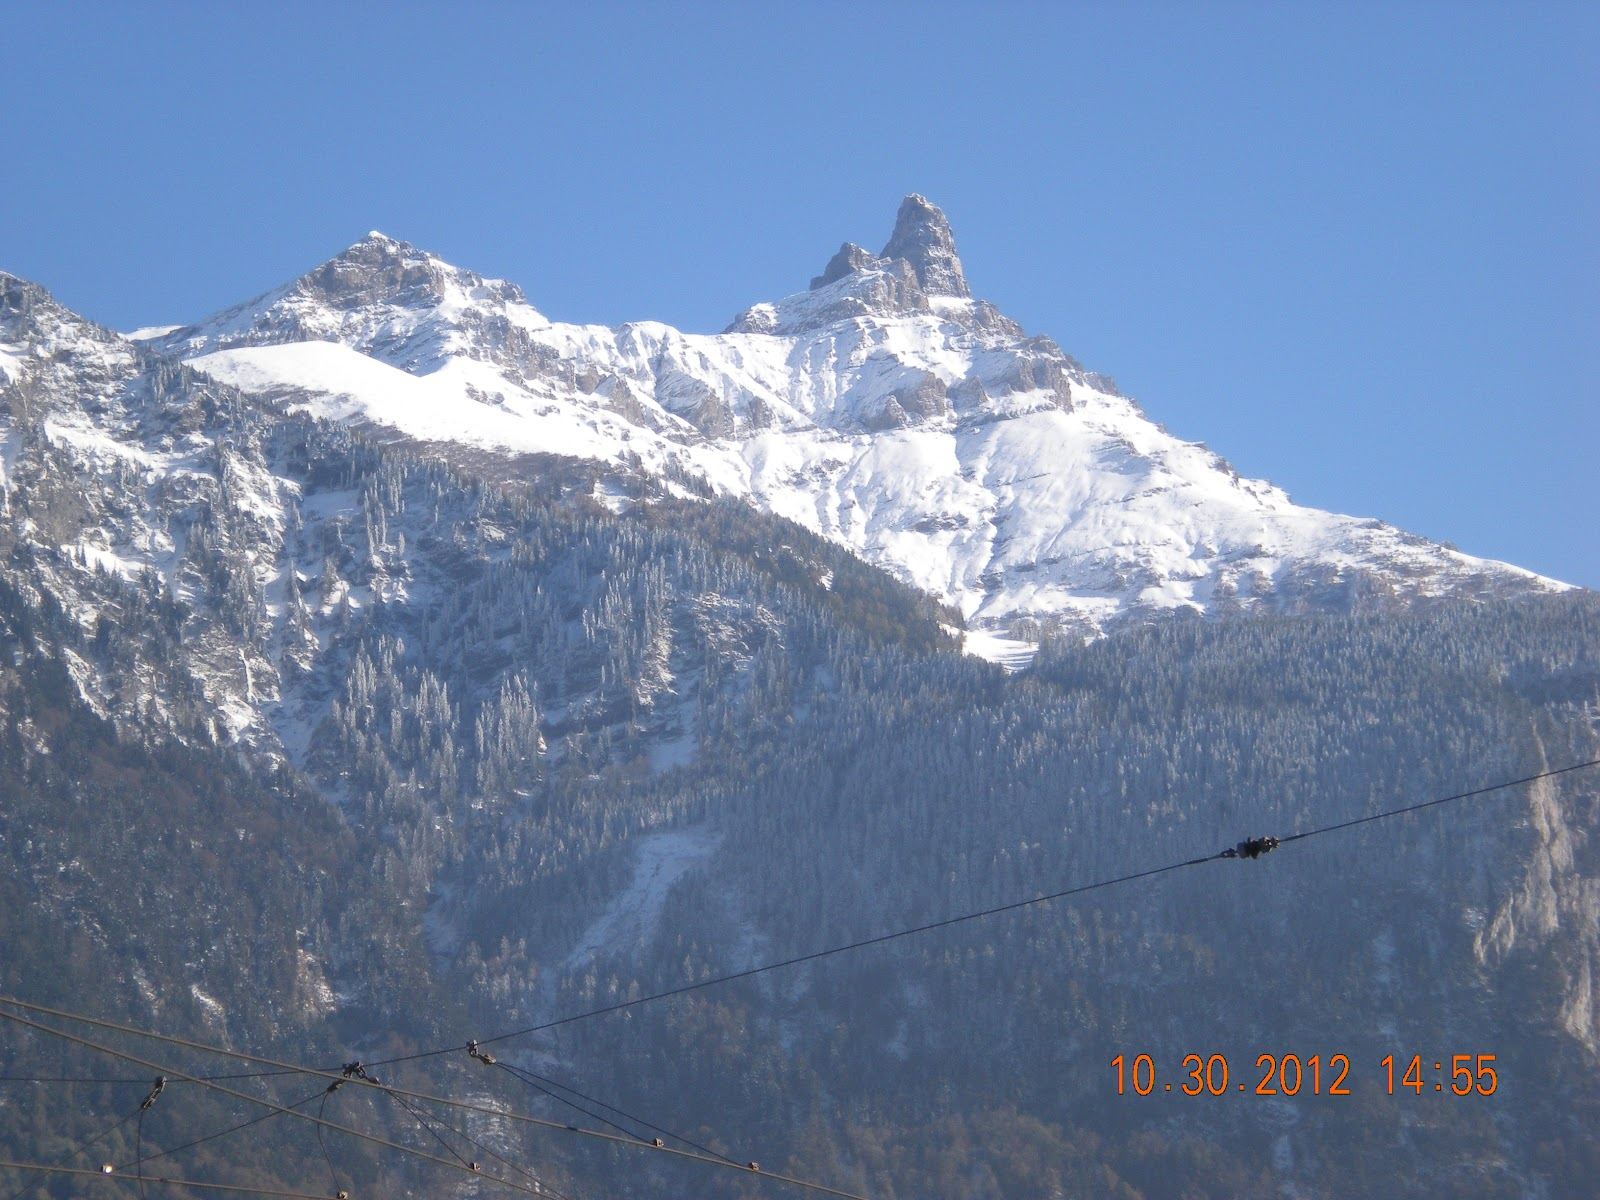 Bex Switzerland  City pictures : Last night Paula and I were talking about living in Switzerland and ...